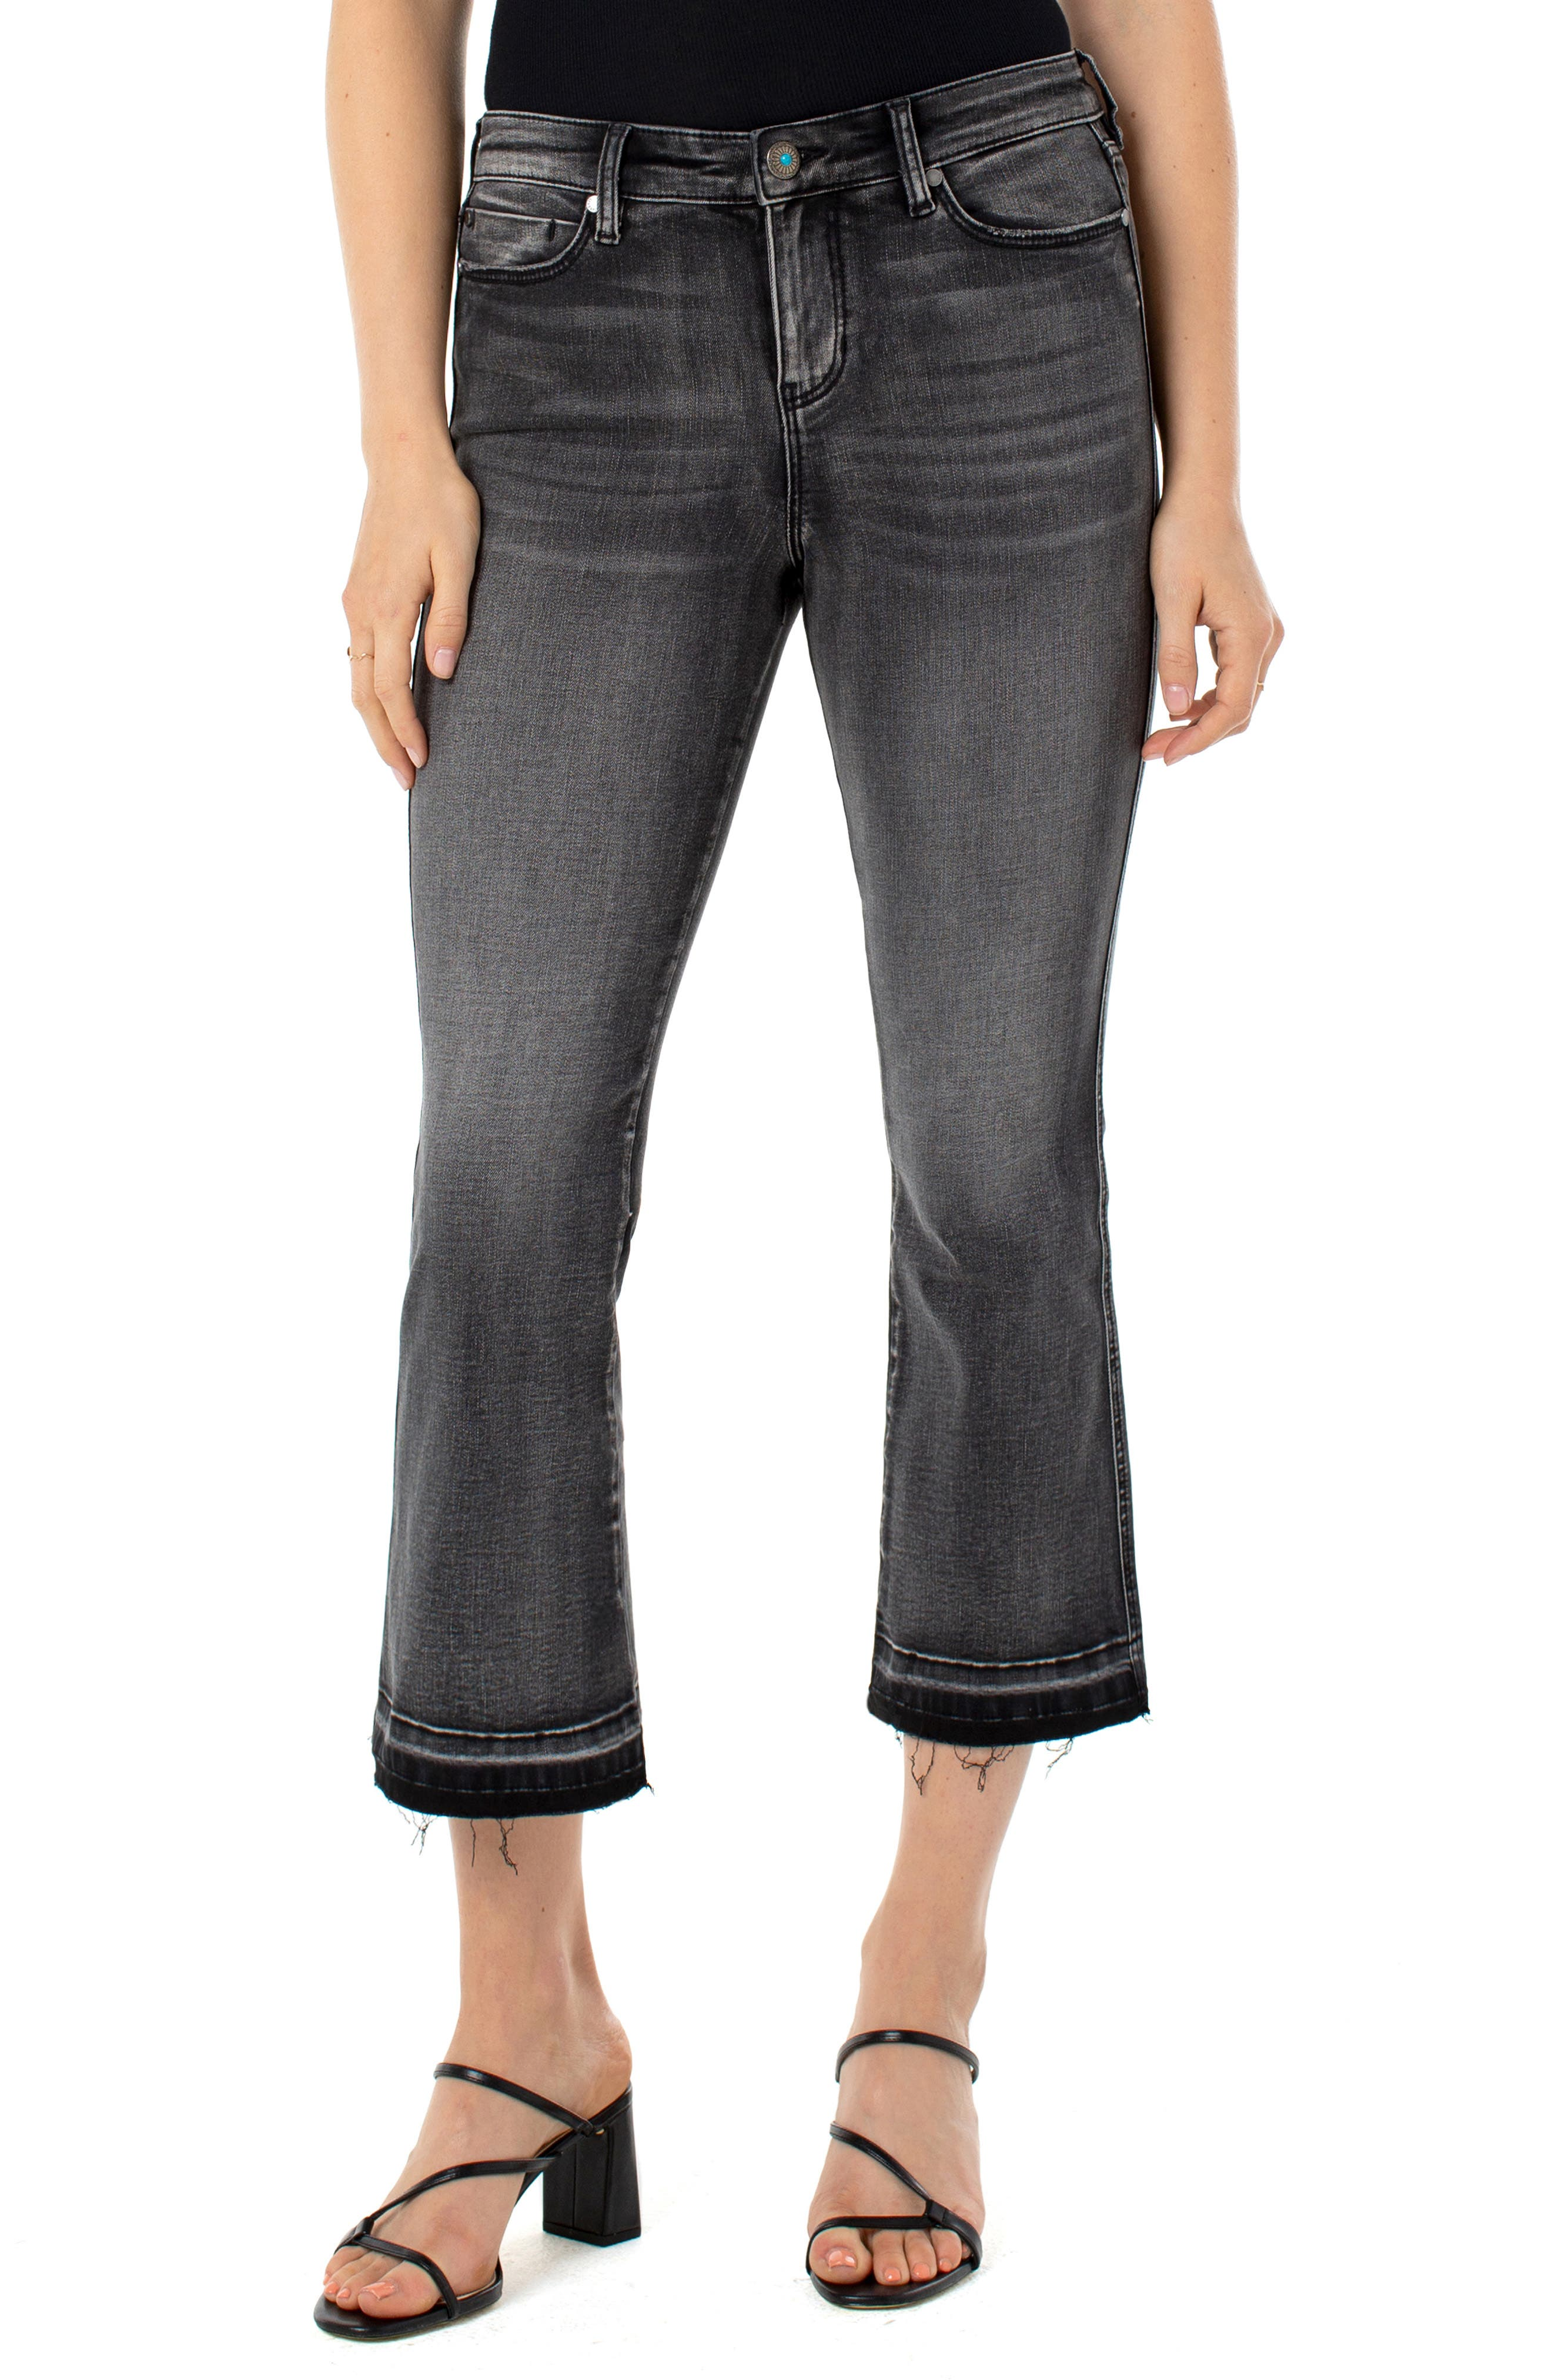 Image of Liverpool Jeans Co Kick Let Down Flare Leg Jeans